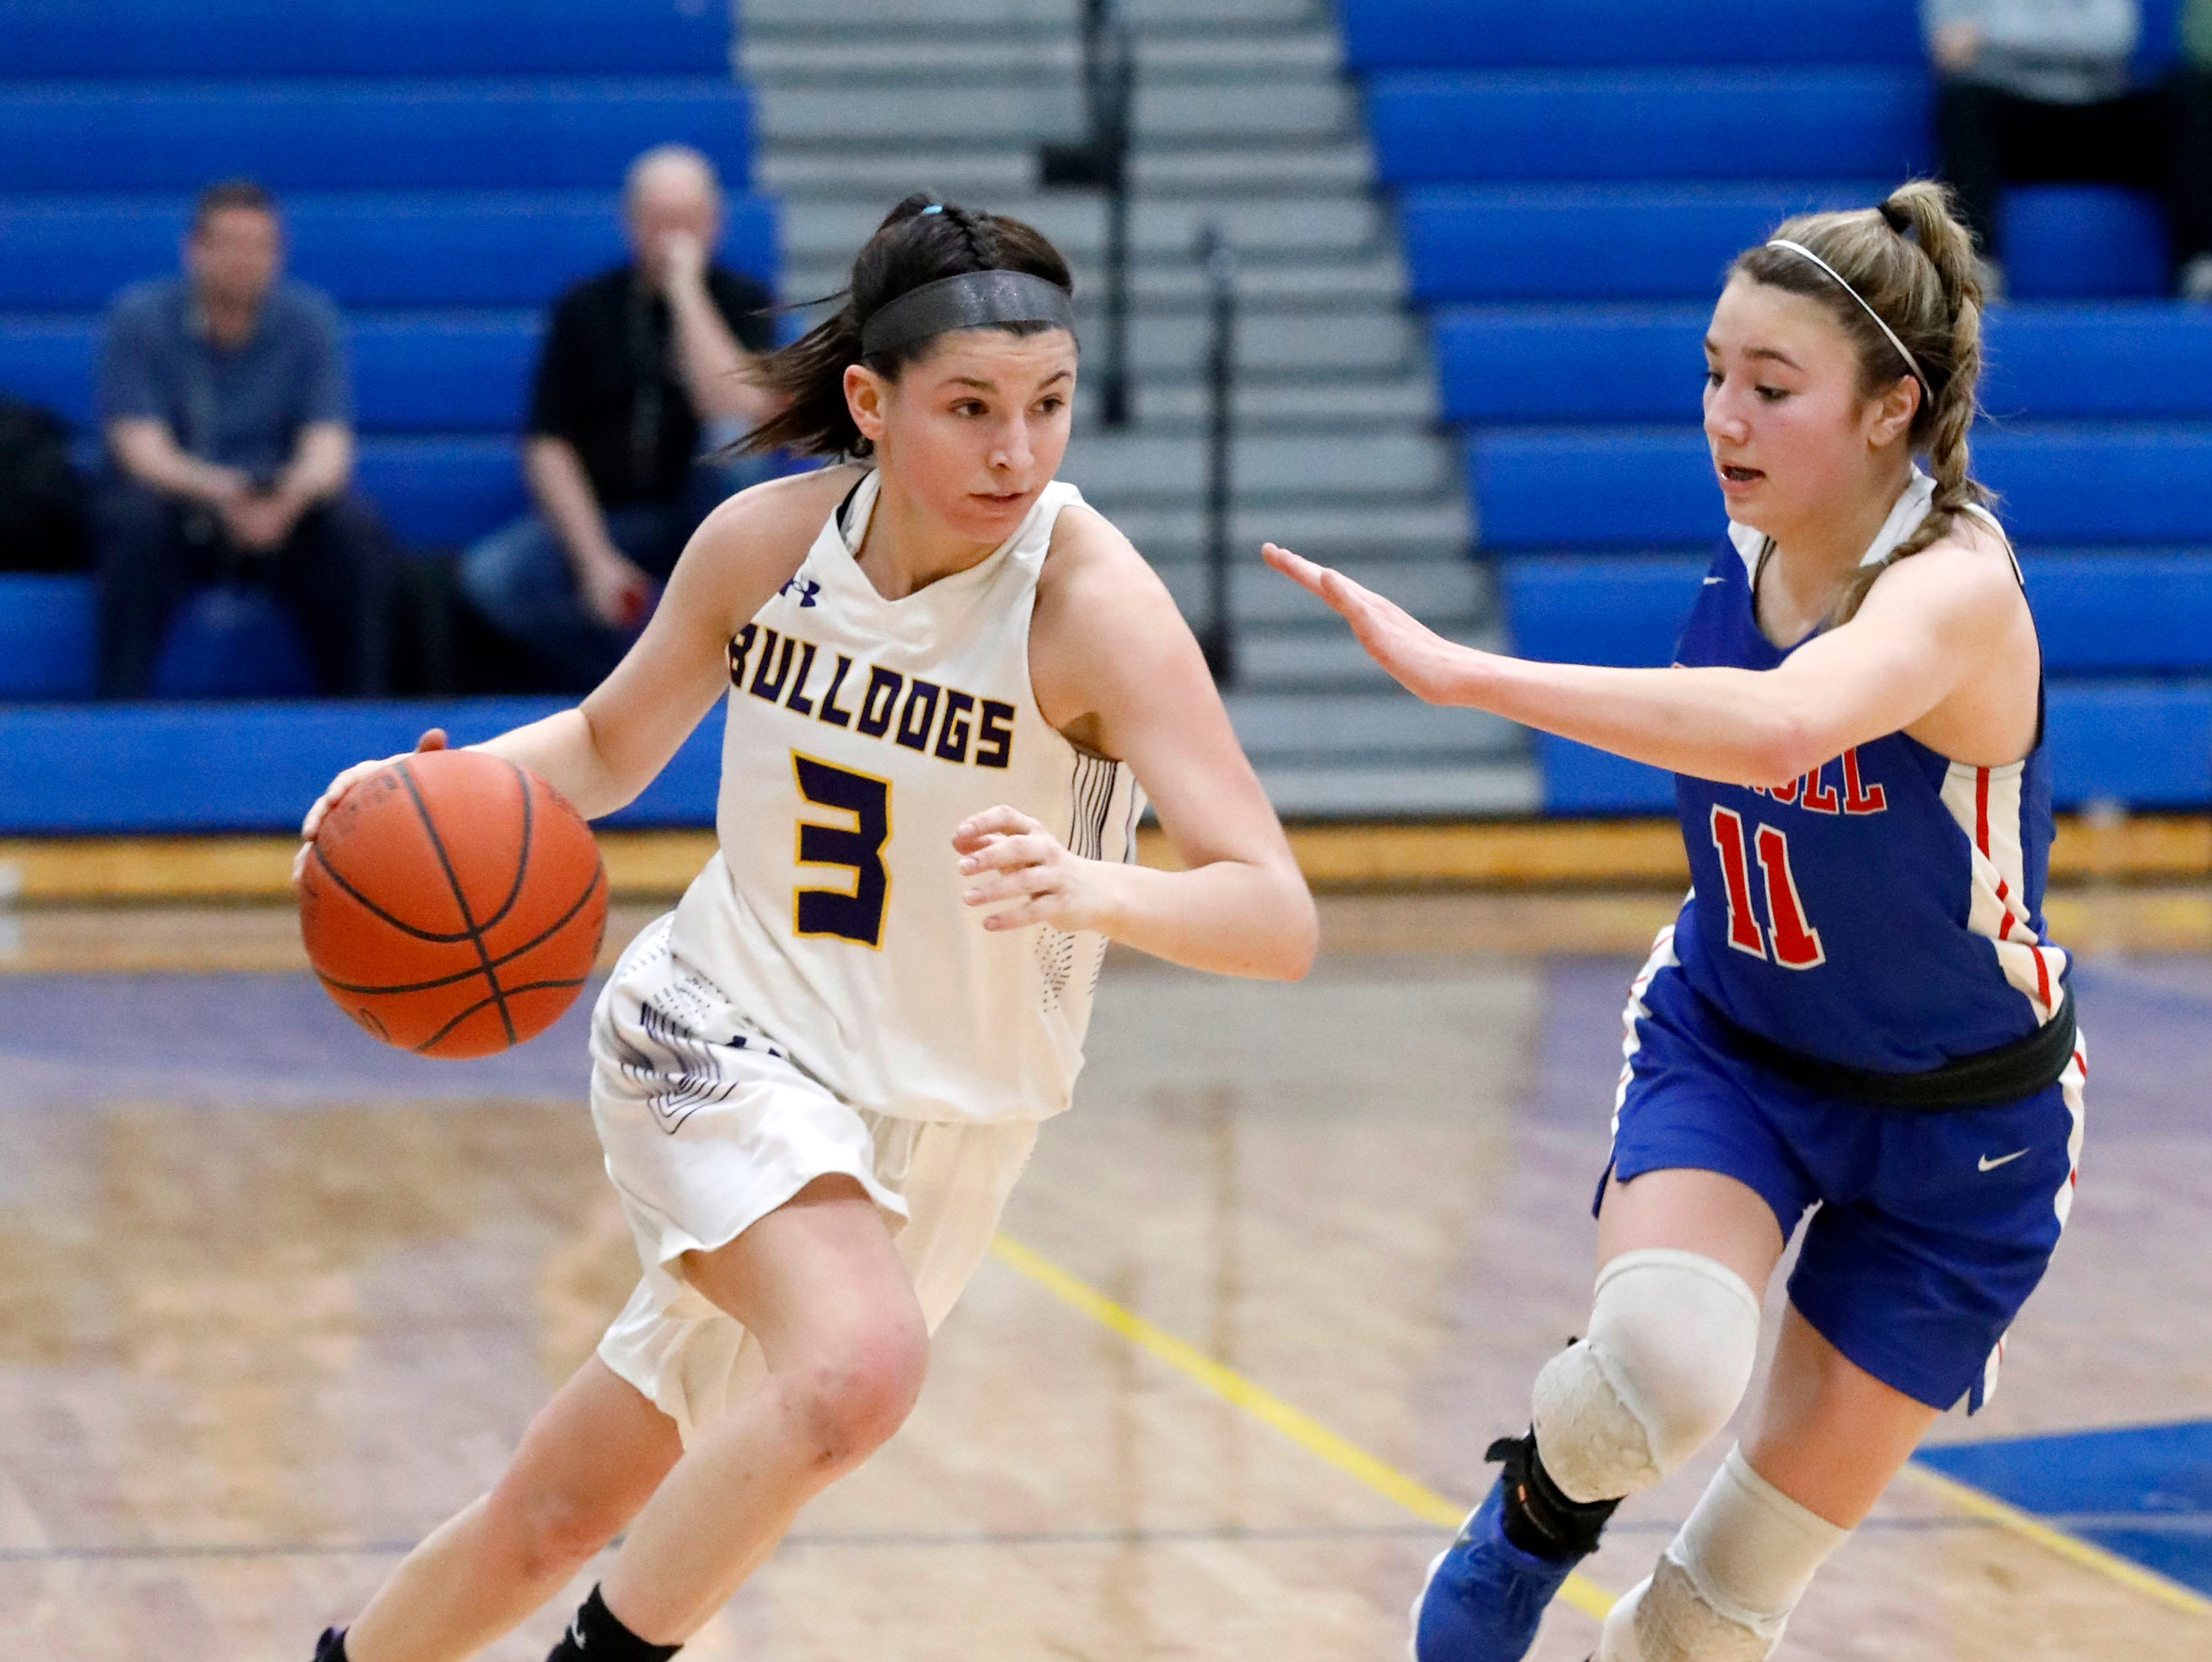 Bloom-Carroll's Makenzee Mason brings the ball down the court during Tuesday night's game, March 5, 2019, at Springfield High School in Springfield. The Bulldogs lost the game to Carroll 46-30.